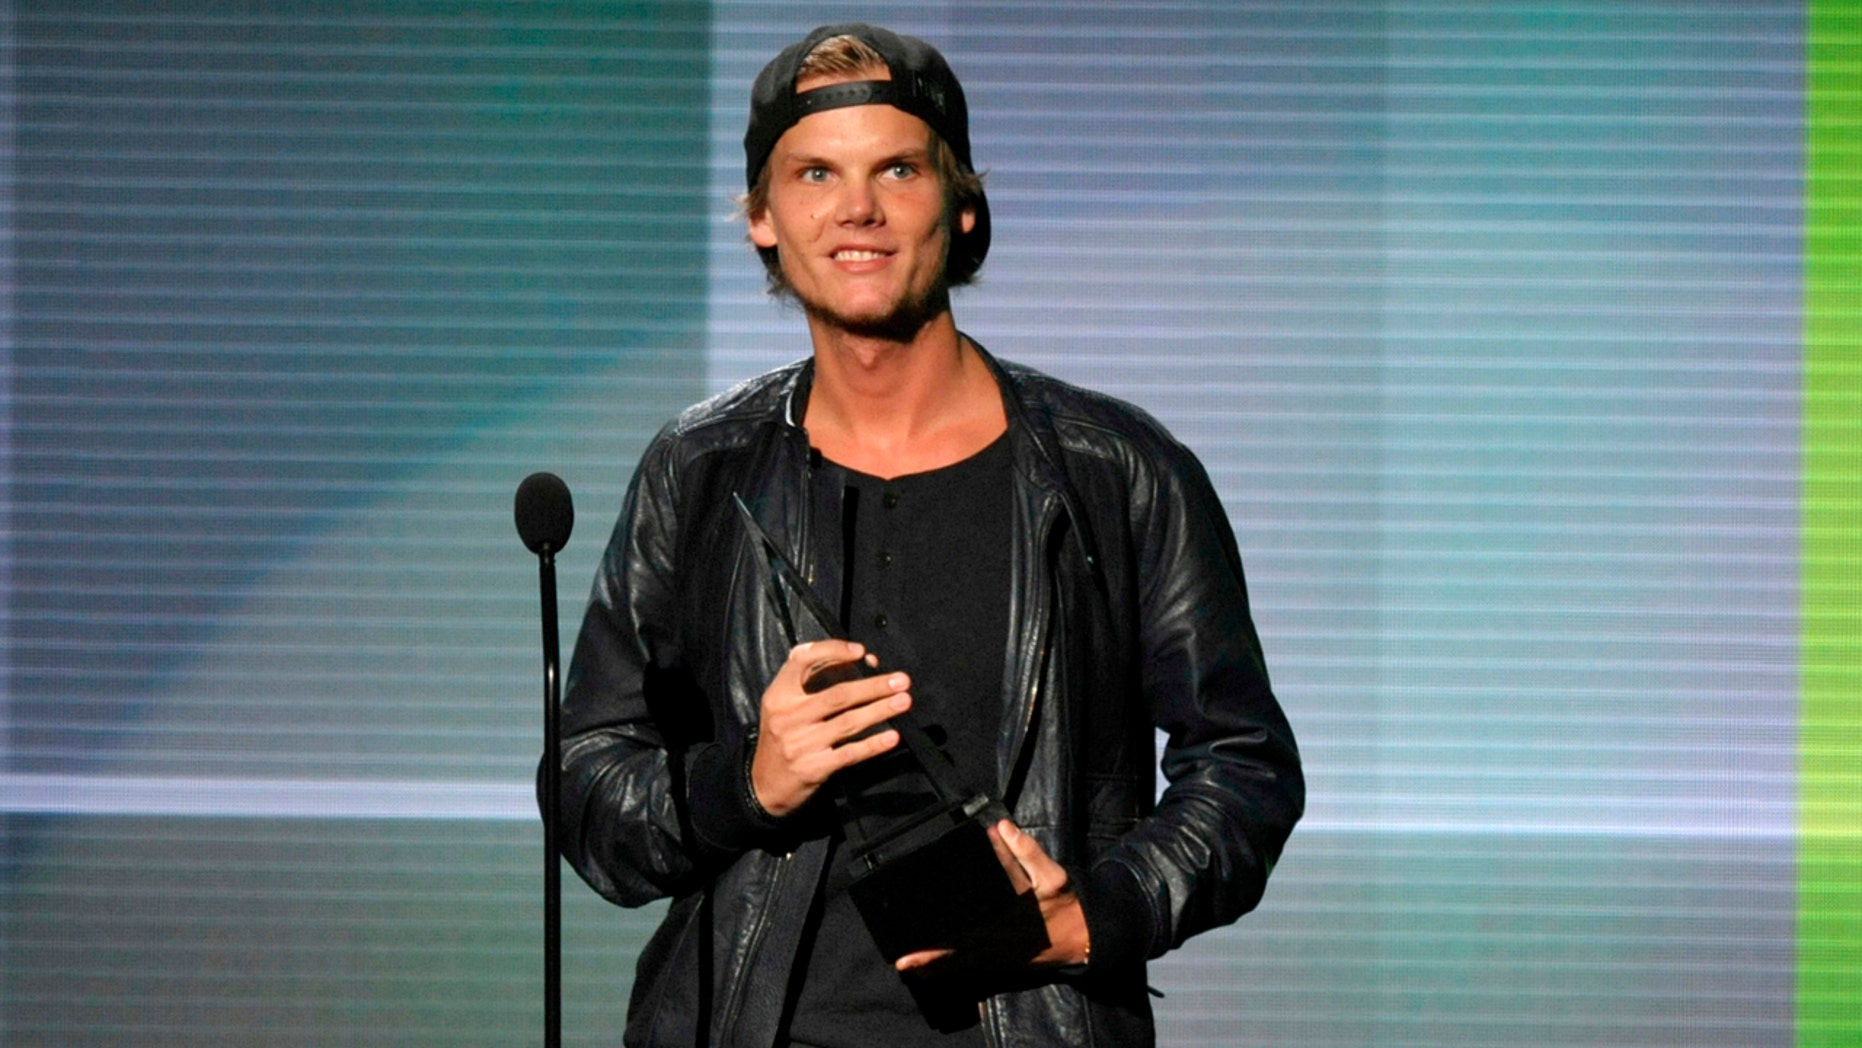 """In this Nov. 24, 2013 file photo, Avicii accepts the award for favorite artist - electronic dance music at the American Music Awards in Los Angeles. Avicii's family released a statement Monday, April 23, 2018, saying they """"would like to thank you for the support and the loving words about our son and brother."""" They say they are grateful for his fans around the world who loved his music. Swedish-born Avicii, whose name is Tim Bergling, was found dead, April 20, in Muscat, Oman."""